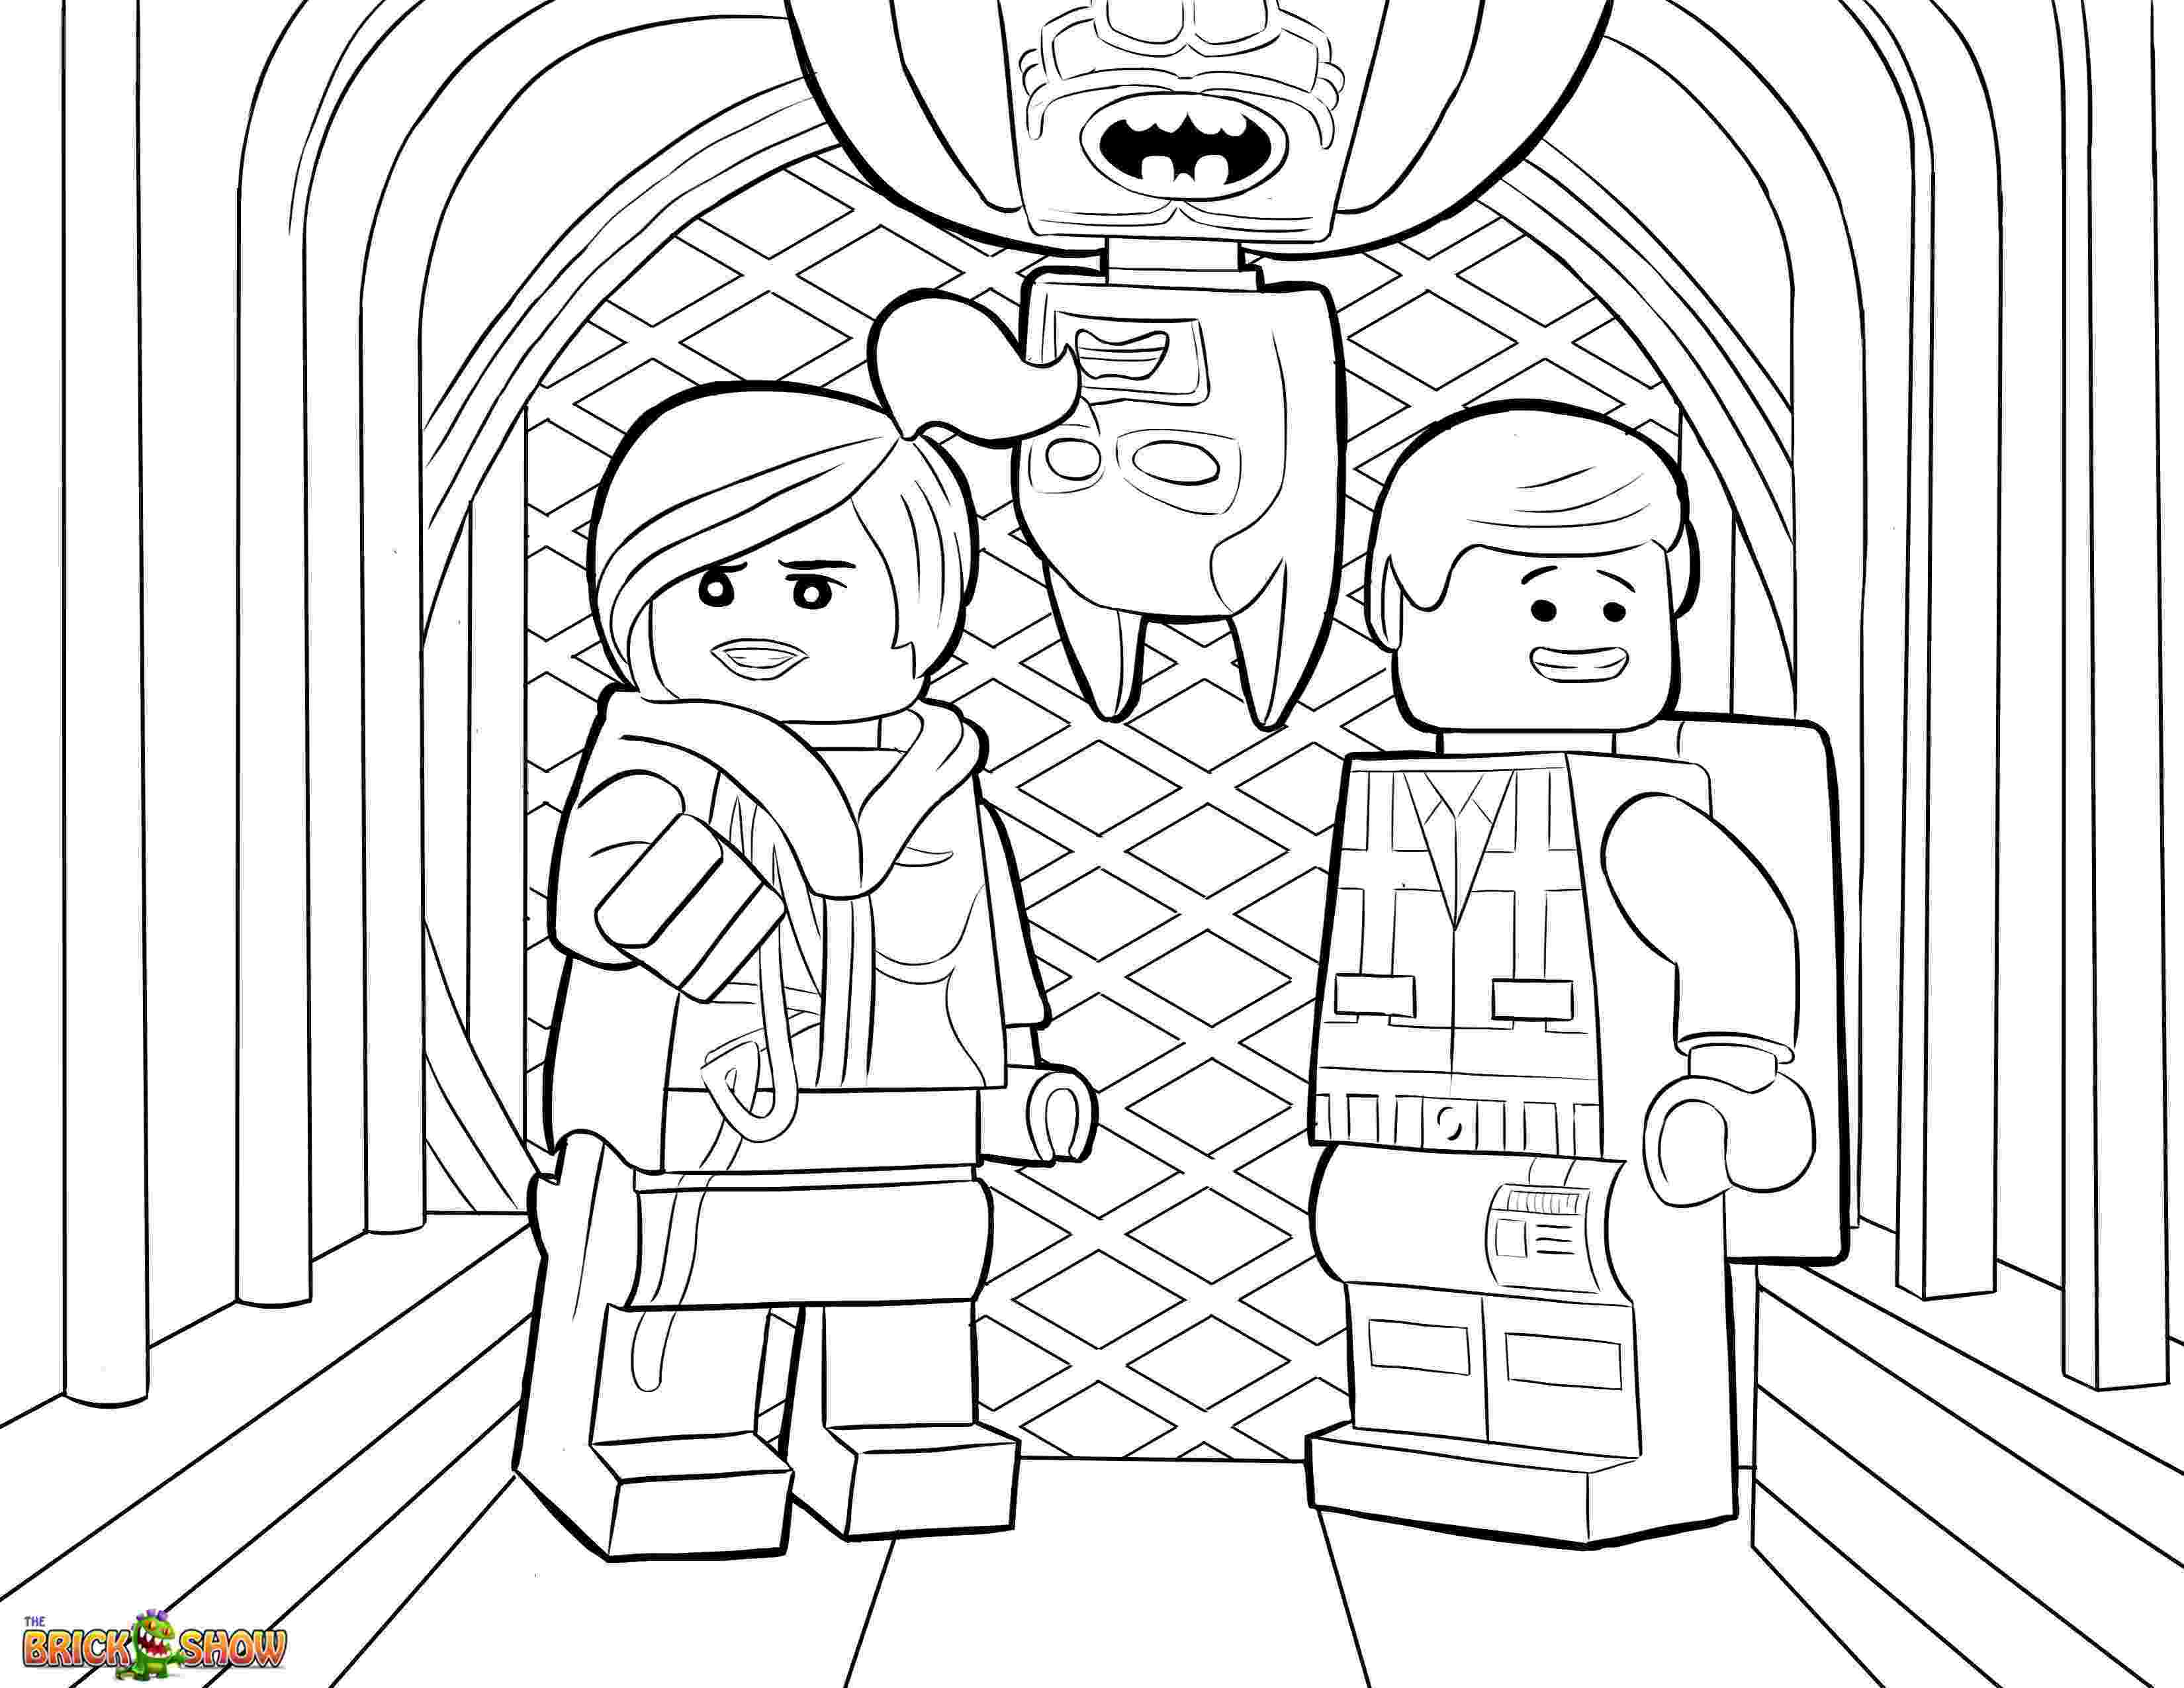 lego pictures to print and colour lego robin coloring page free printable coloring pages pictures to colour and lego print